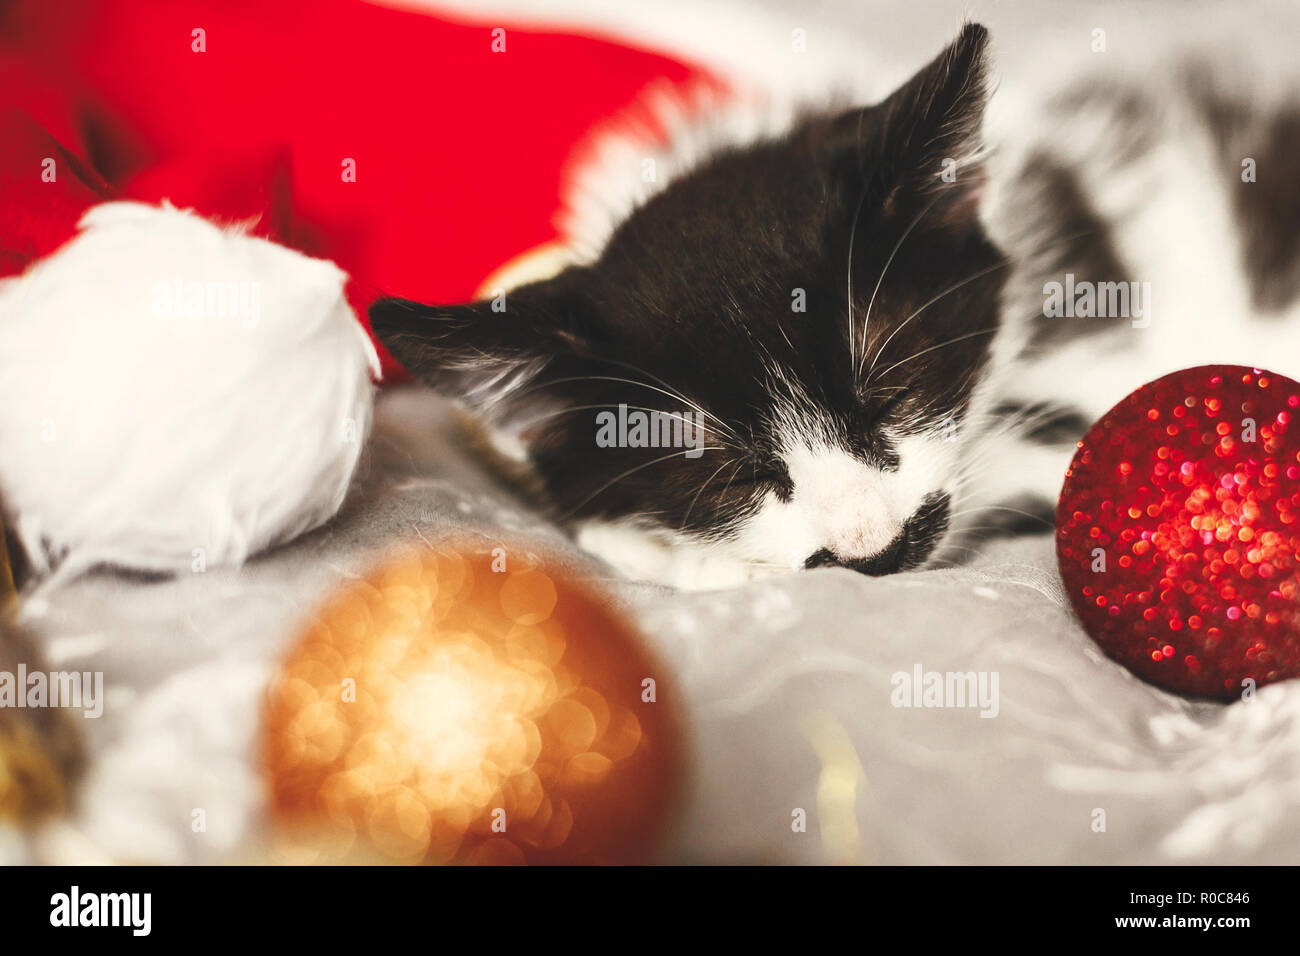 Cute kitty sleeping in santa hat on bed with gold and red christmas baubles in festive room. Merry Christmas concept. Adorable kitten napping. Atmosph - Stock Image